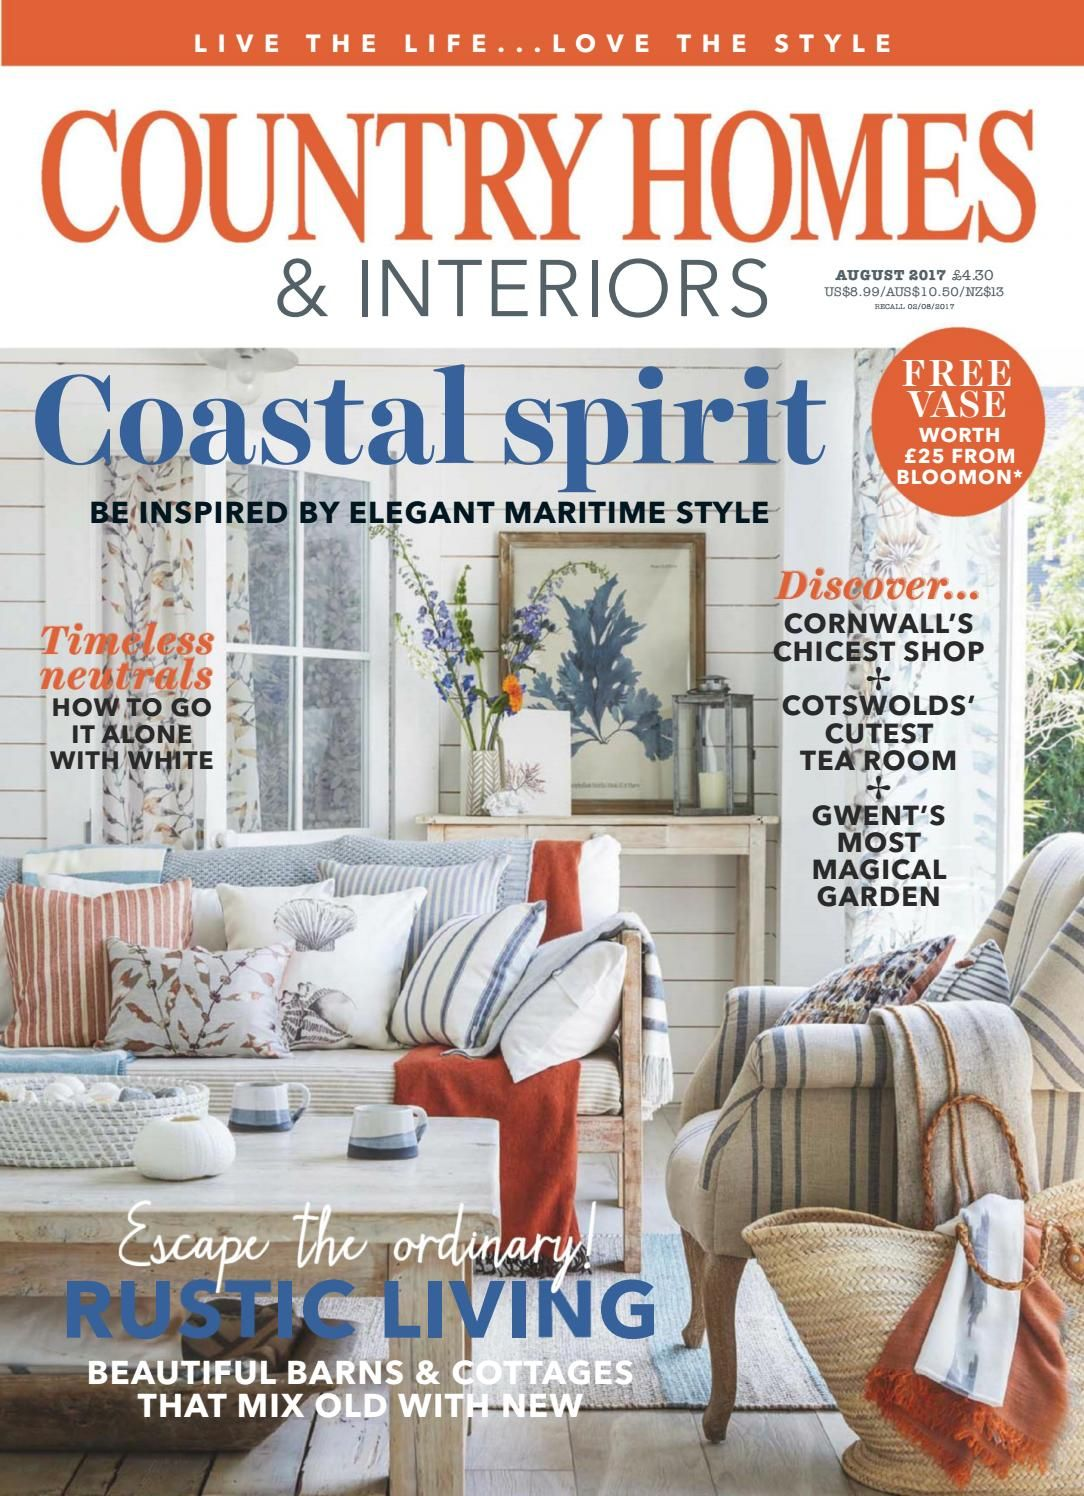 Country Home Furniture Store Model Interior country homes interiors august 2017 | interiors magazine